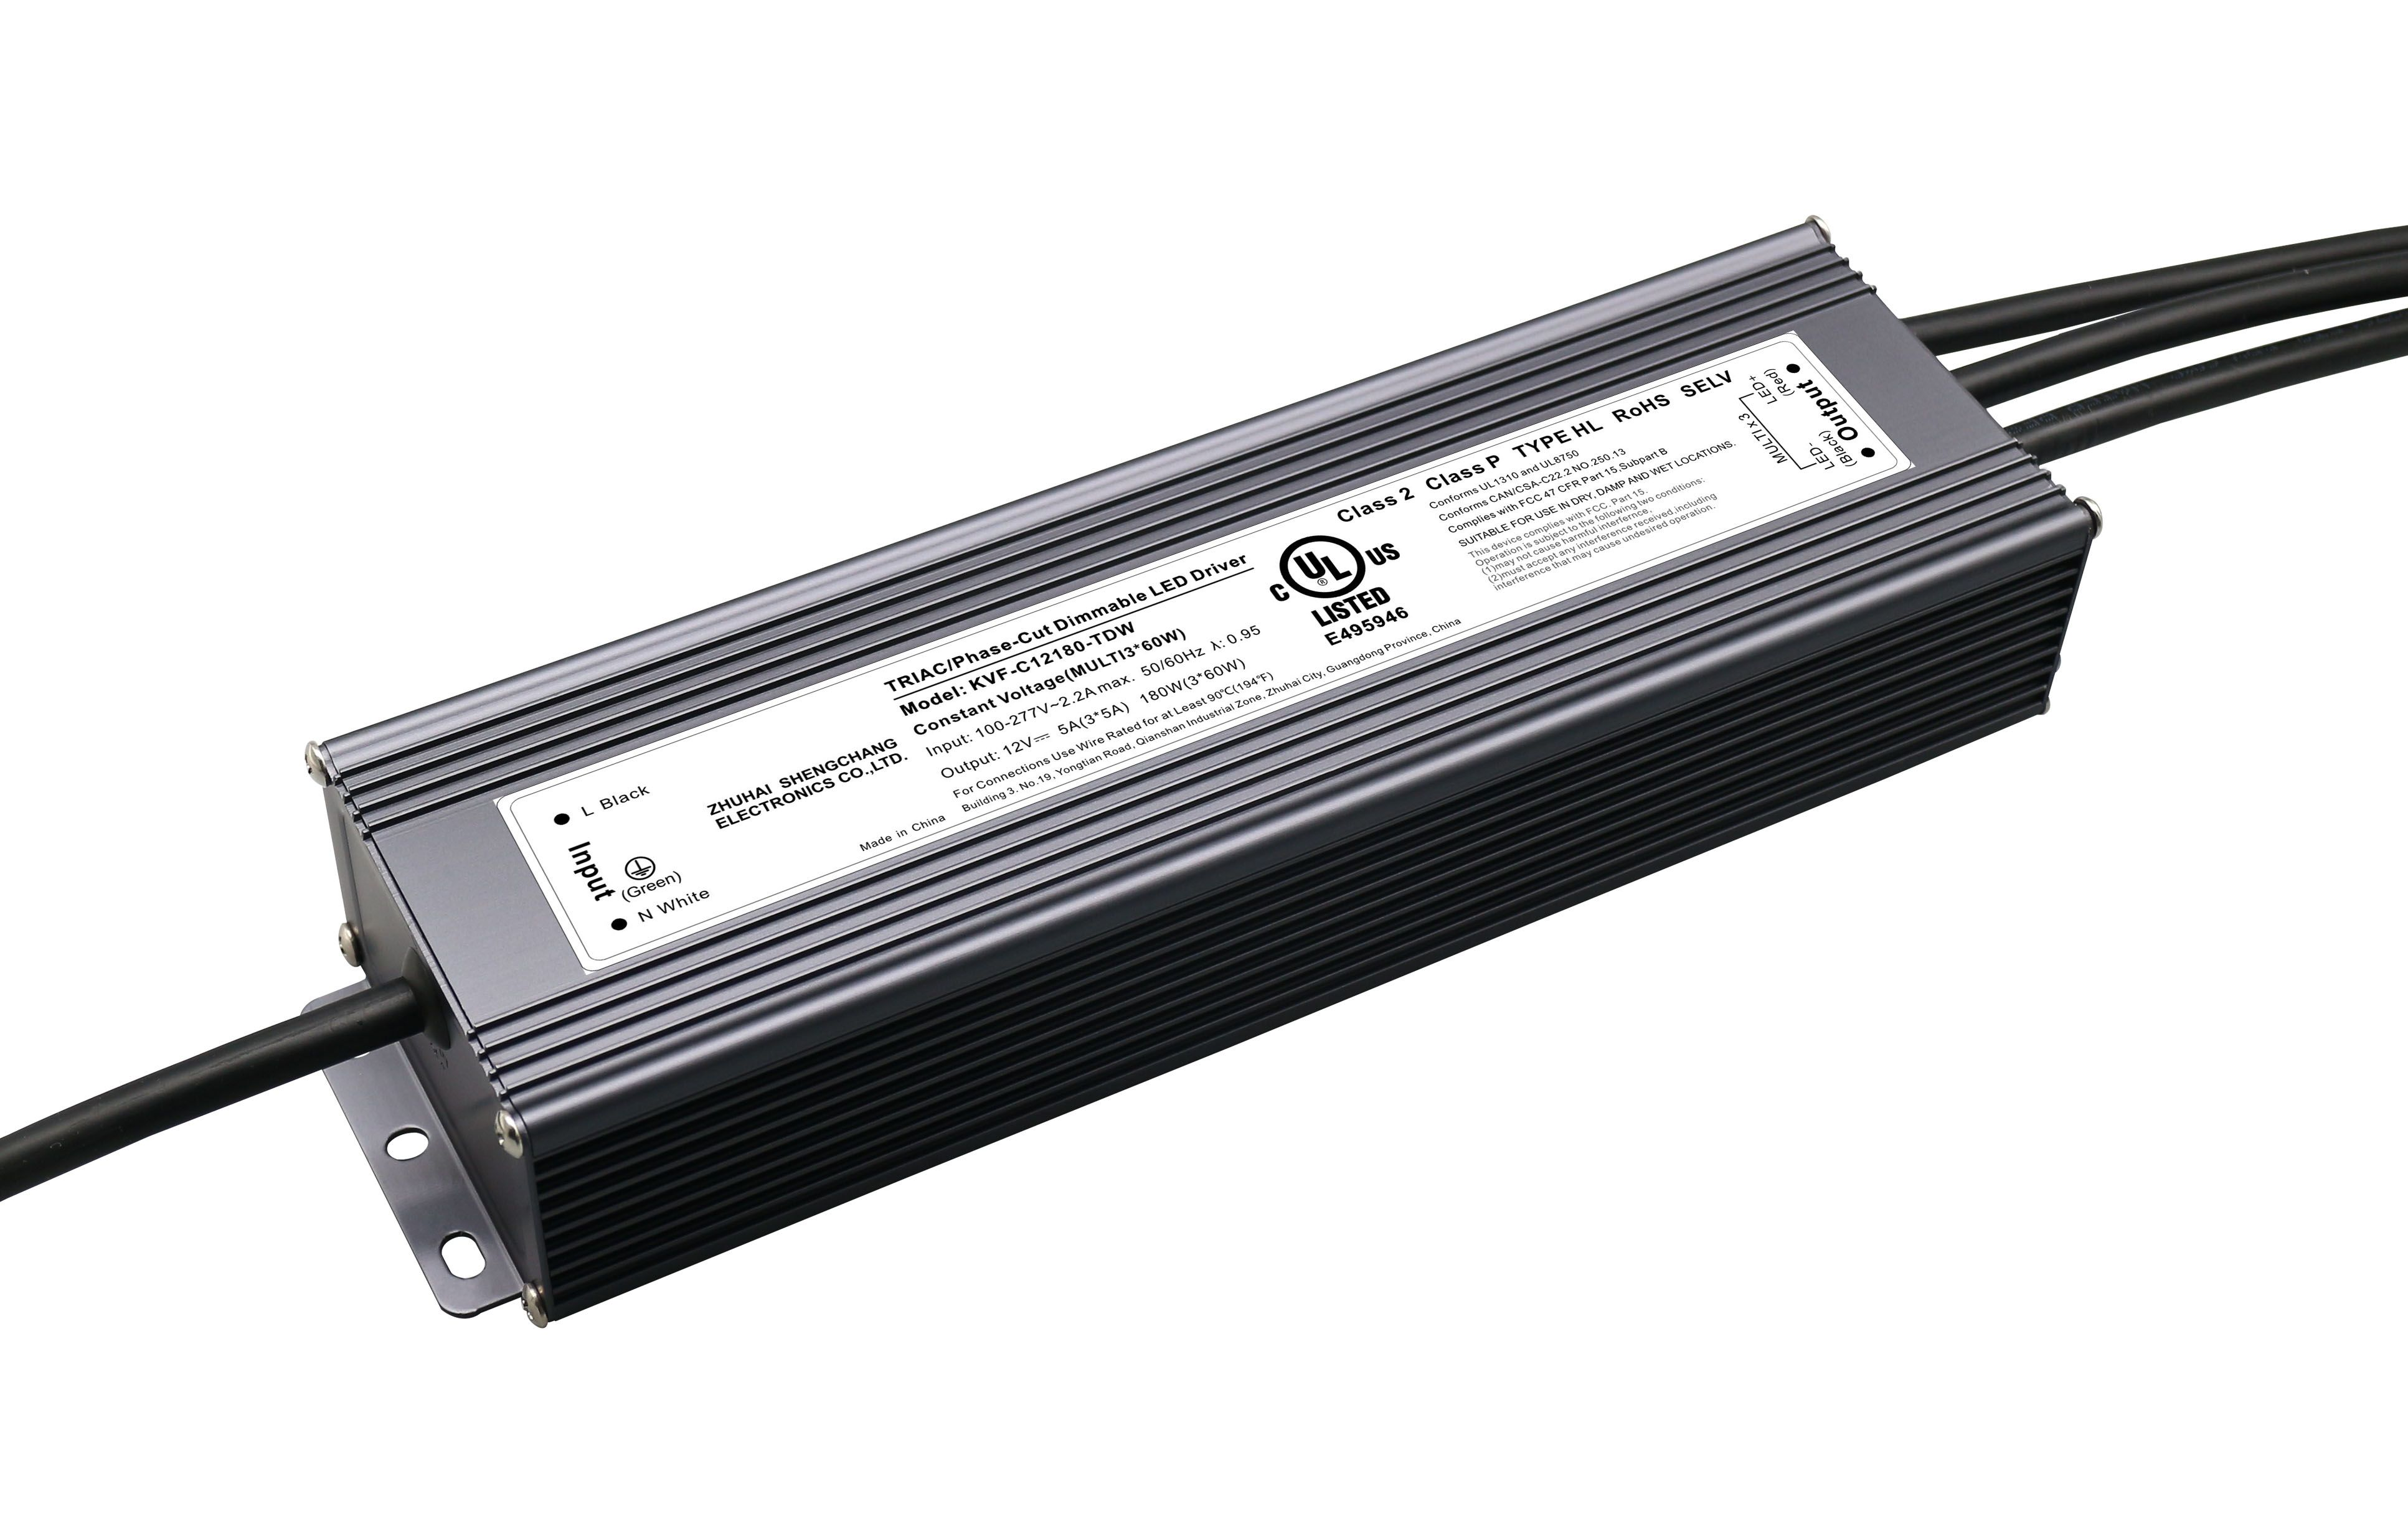 120VAC KVF series 180W / 192W constant voltage triac LED driver